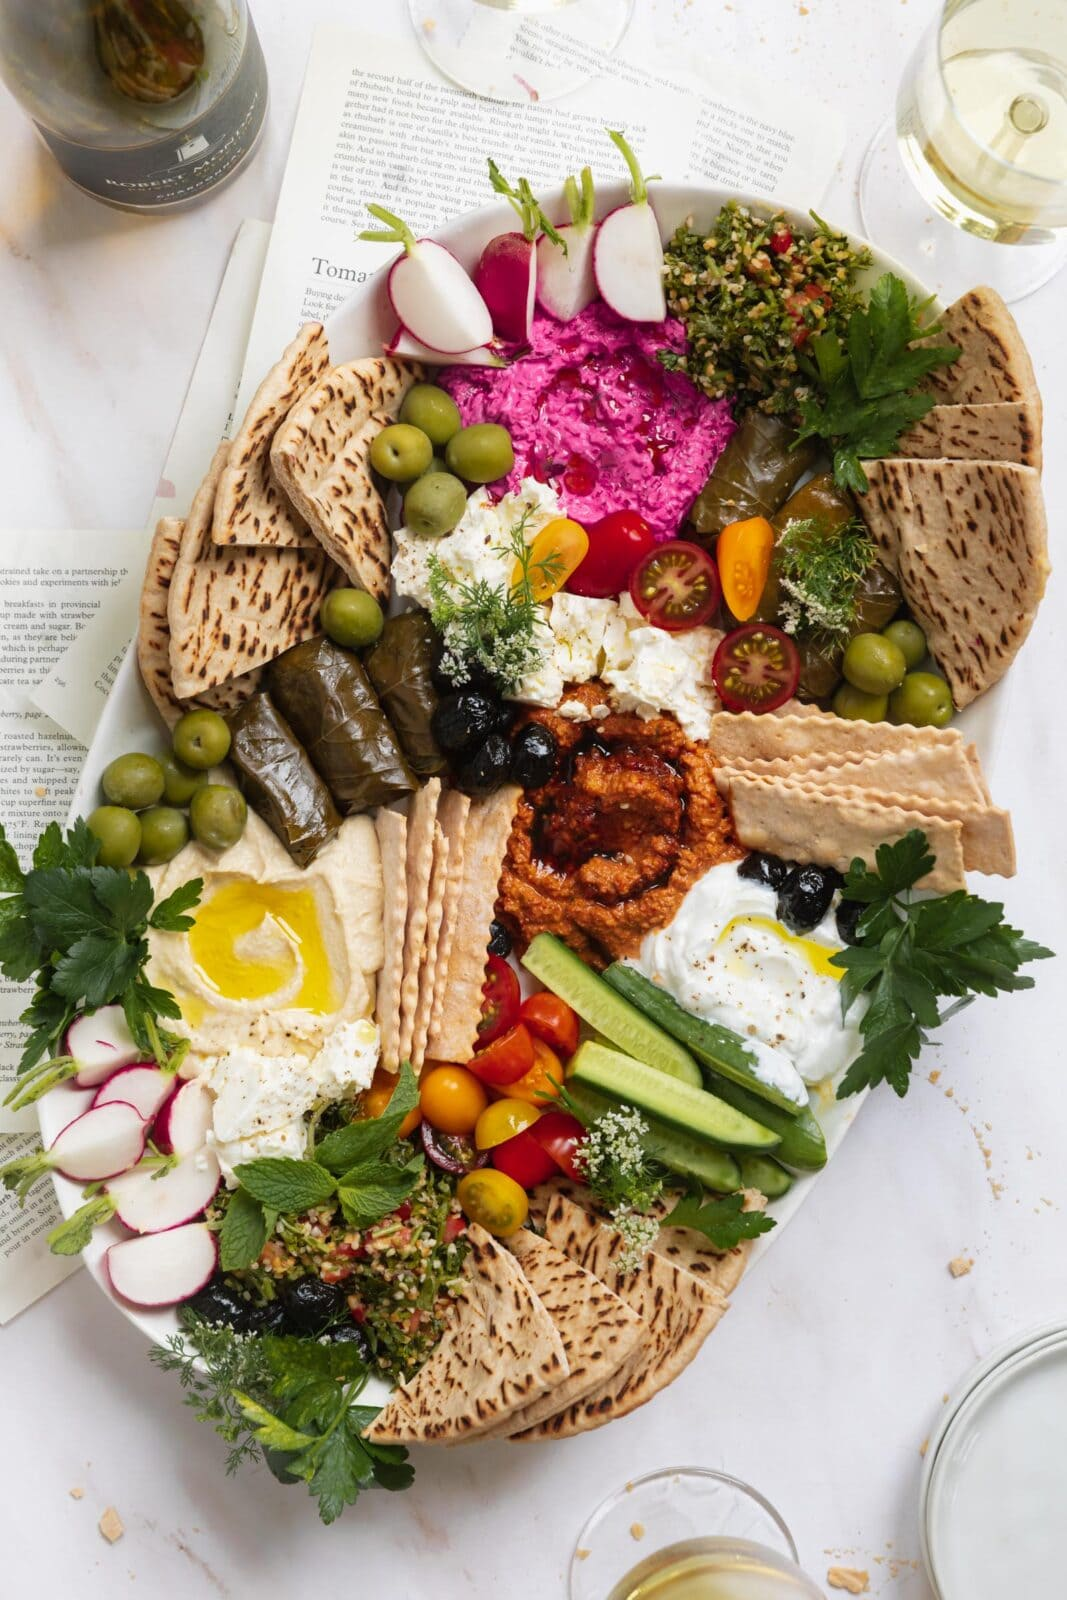 mezze platter with veggies, pita, olives and spreads